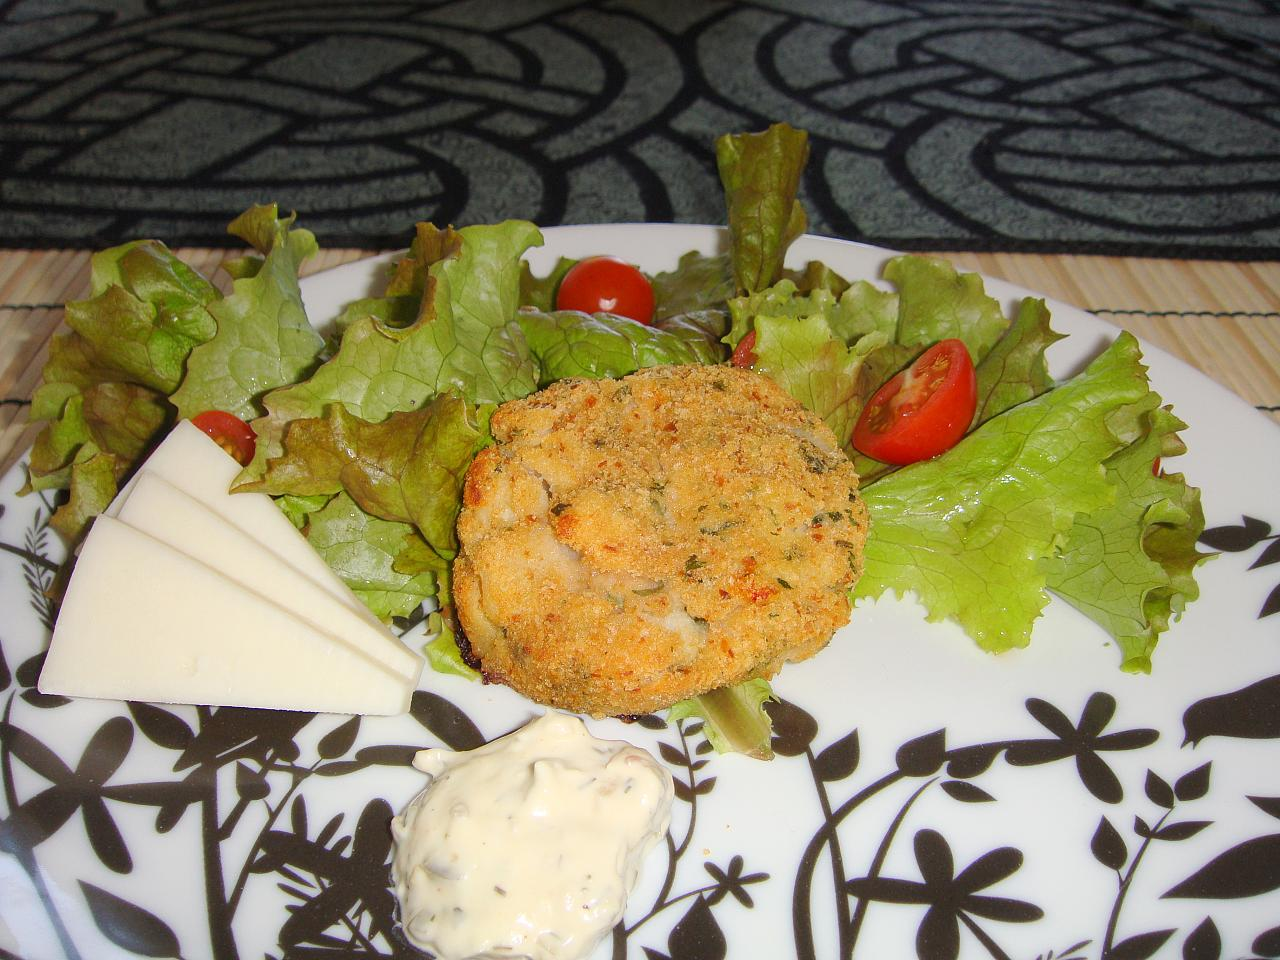 Scallop cakes over salad